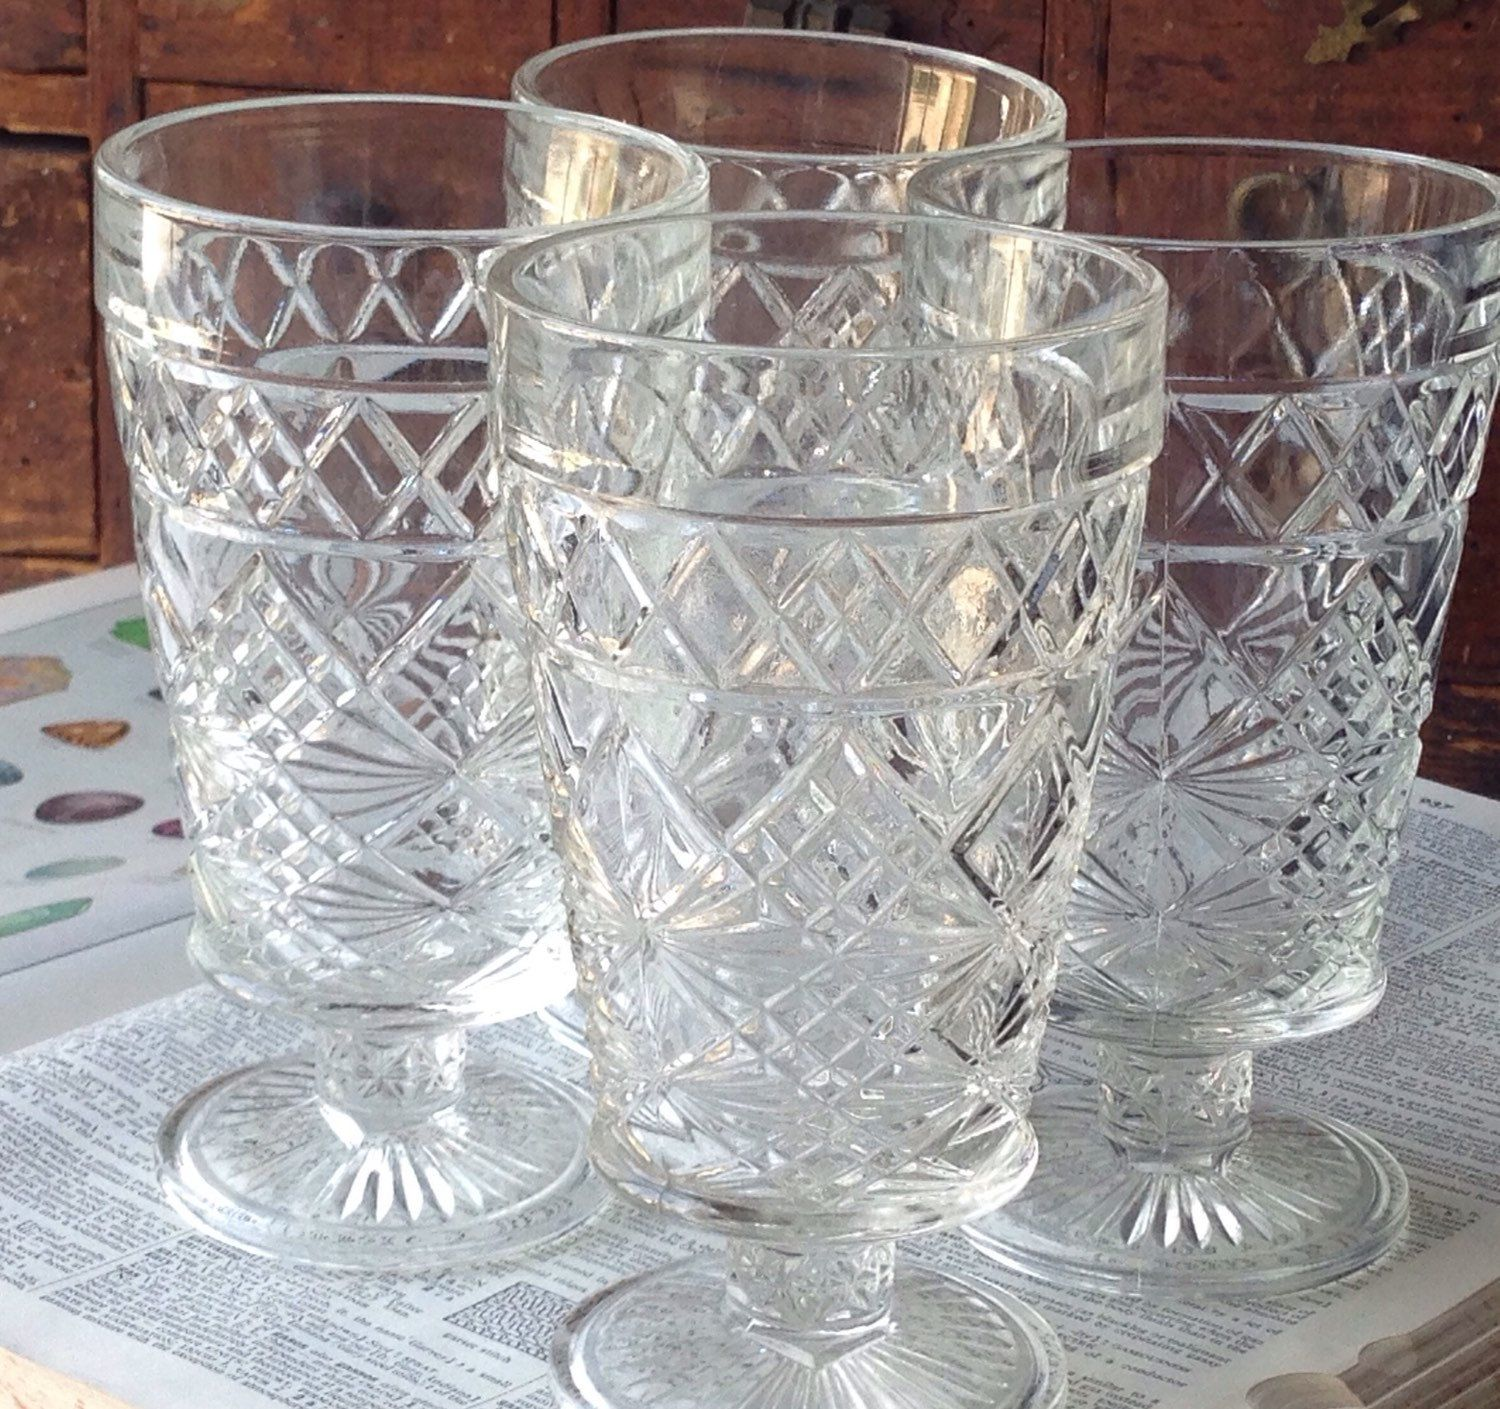 Superb Cape Cod Glass Company Part - 5: Pressed Glass Goblets - Set Of 4 - Cape Cod By Imperial Glass Co - Circa